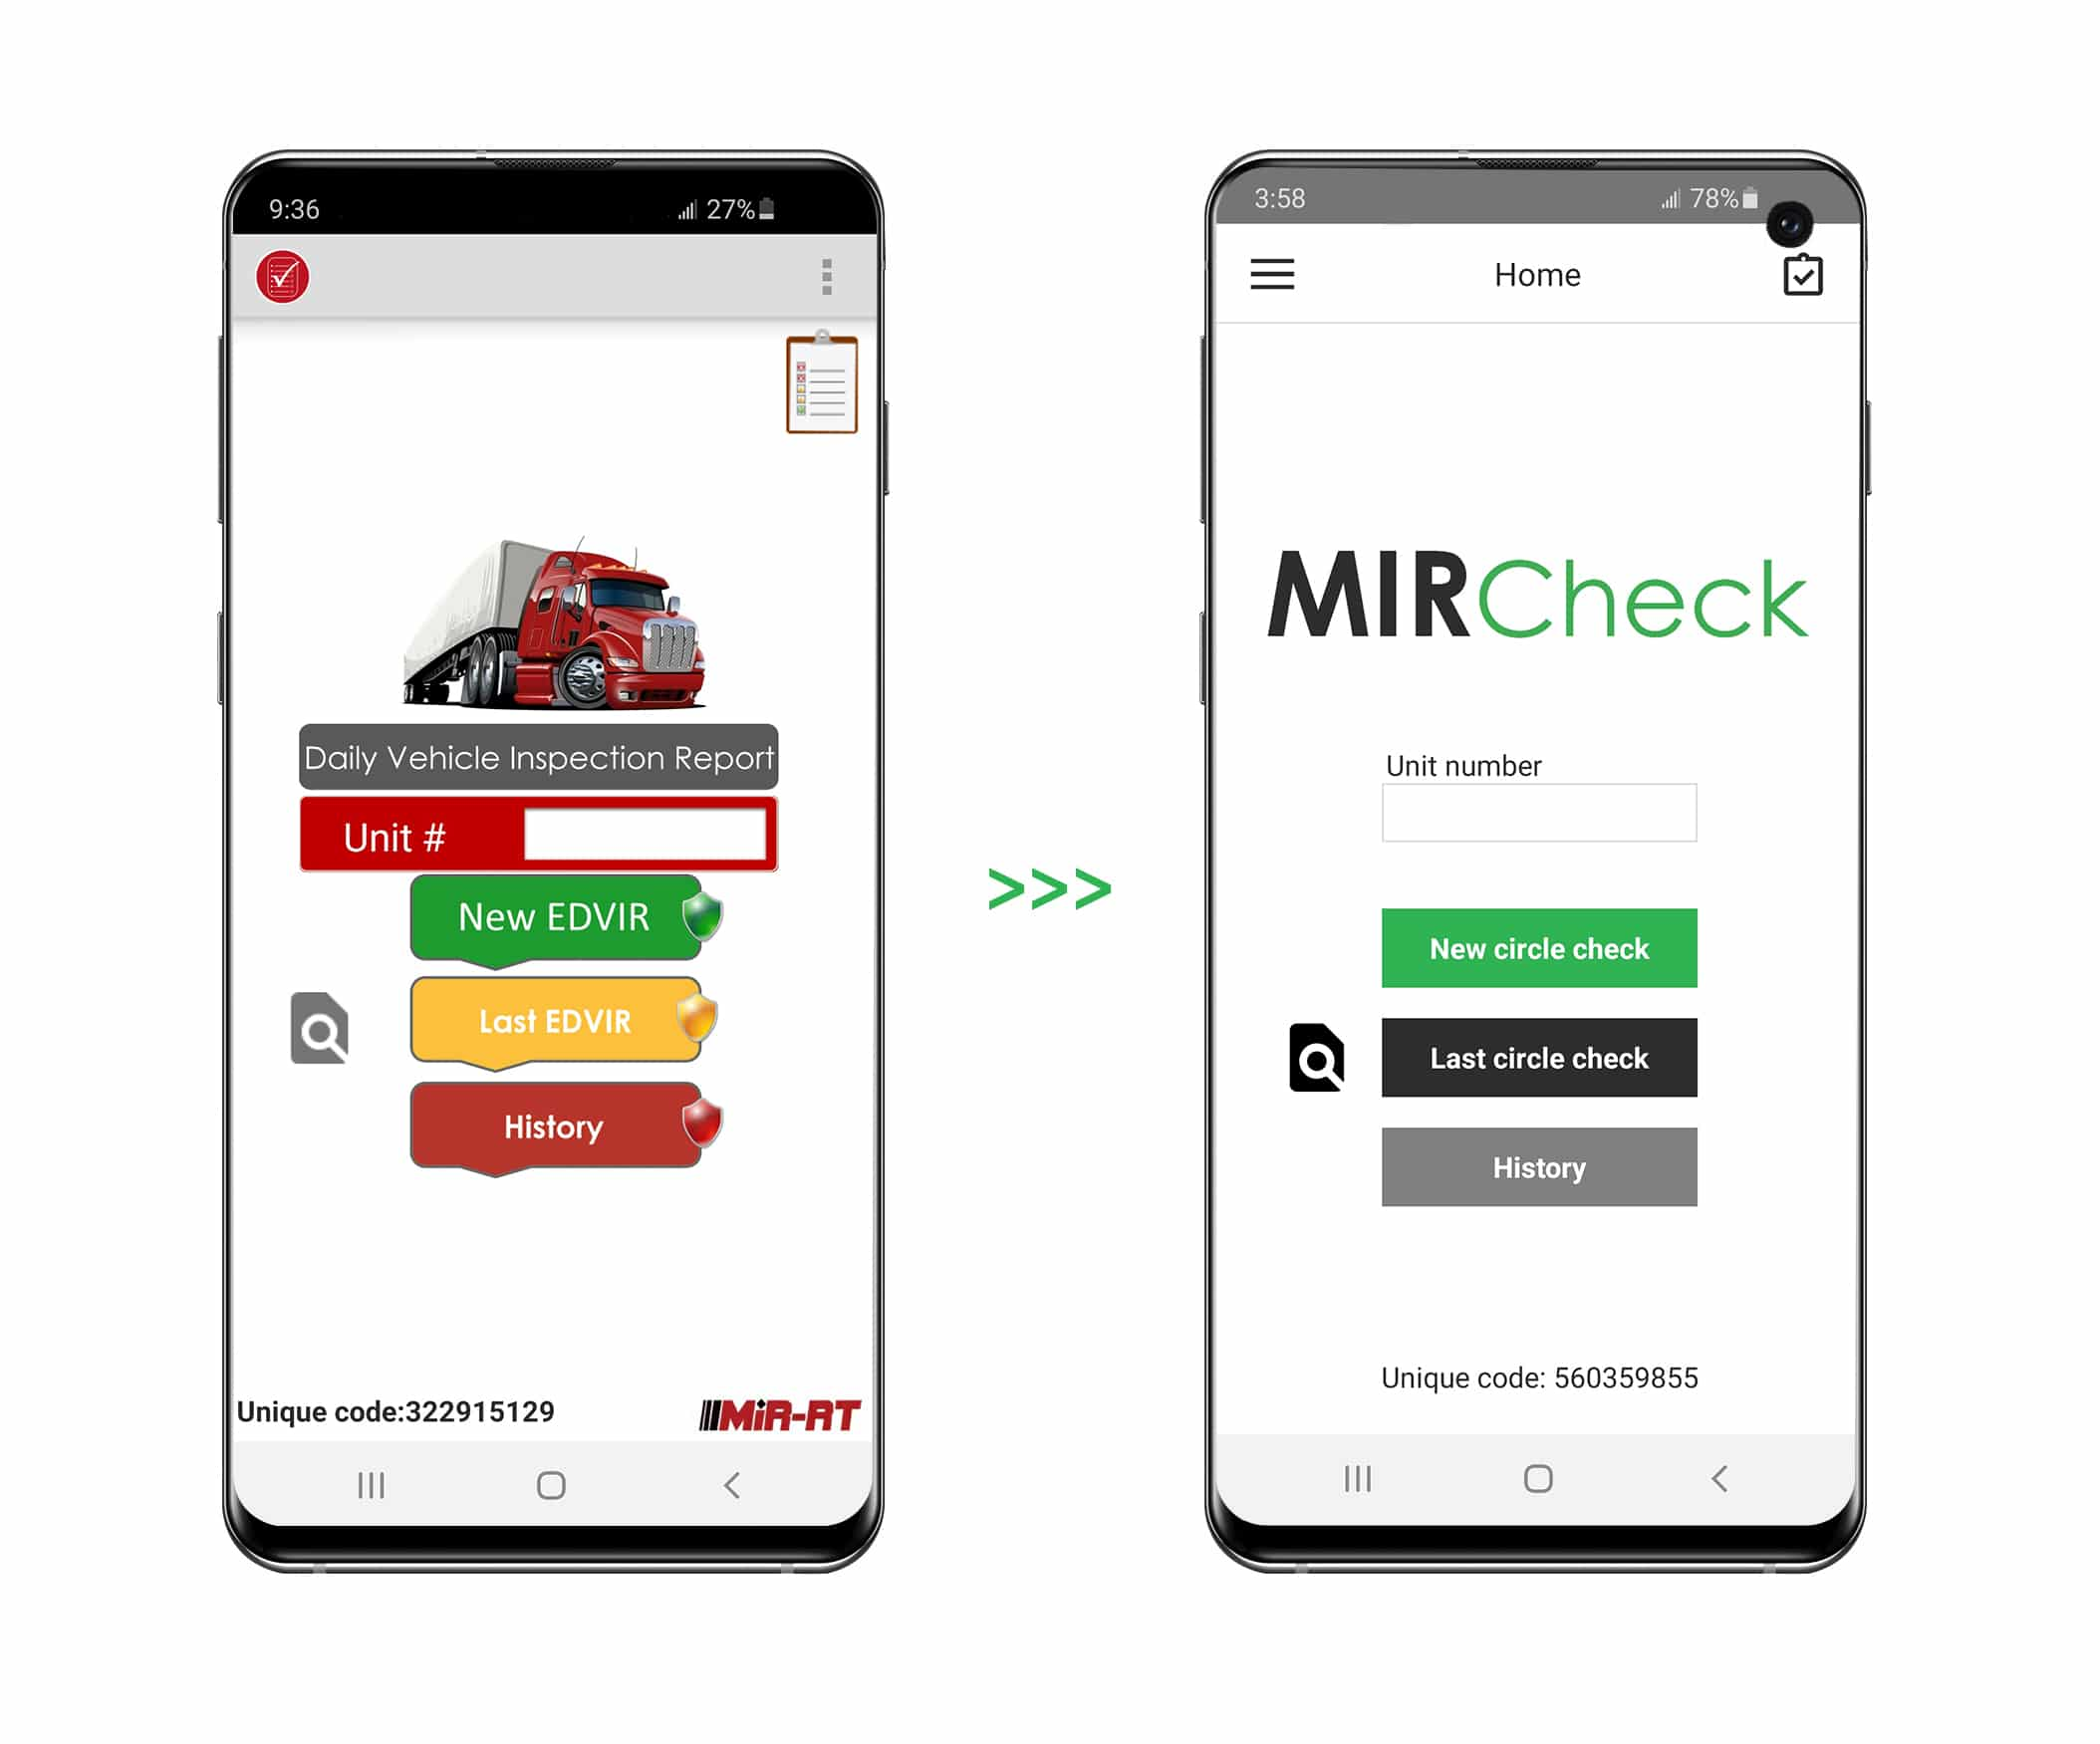 MIRCheck - Before and After - Home page